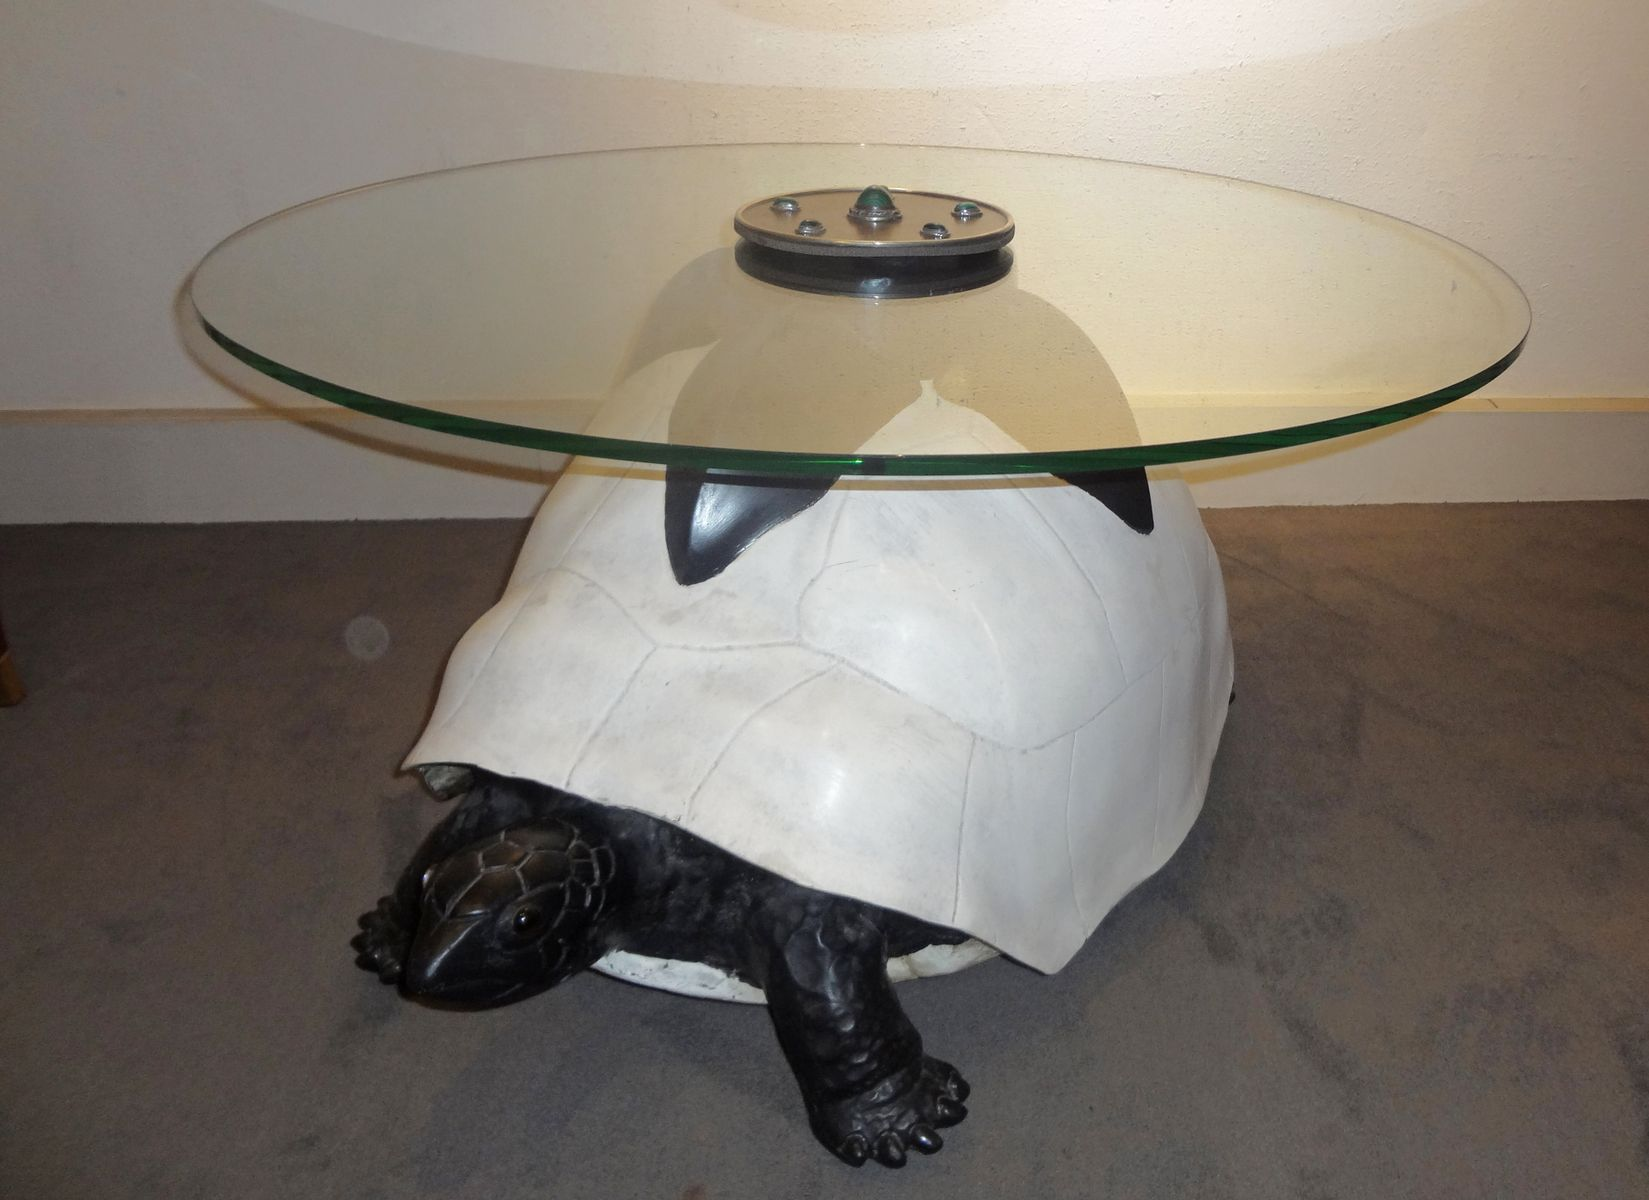 Tortoise coffee table by anthony redmile 1980s for sale at pamono tortoise coffee table by anthony redmile 1980s geotapseo Gallery